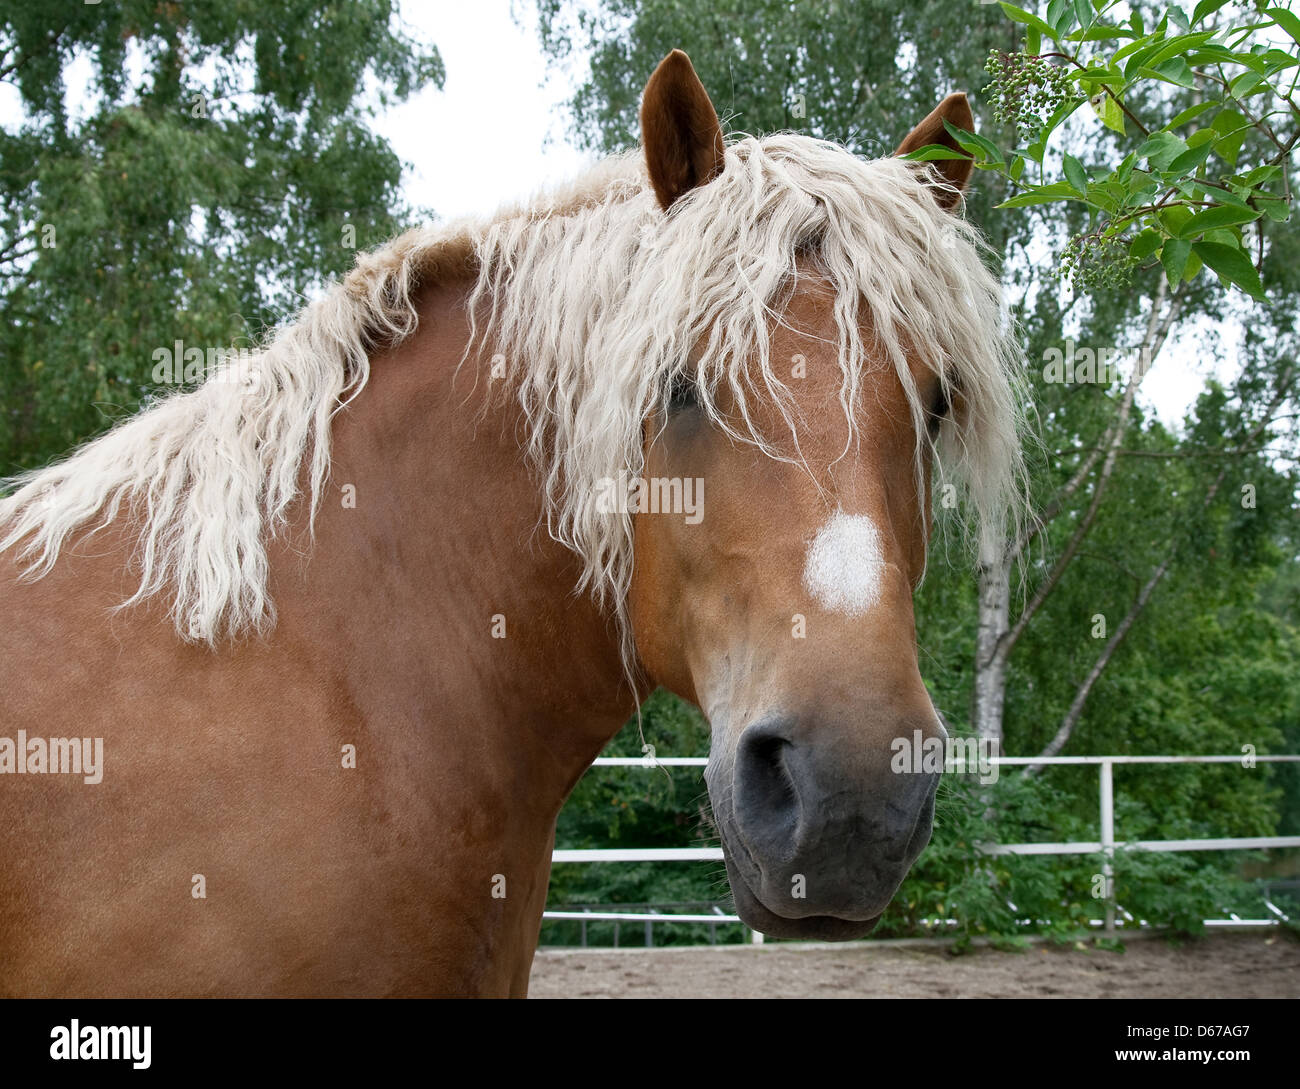 Portrait of a beautiful heavy draft horse with long mane. - Stock Image